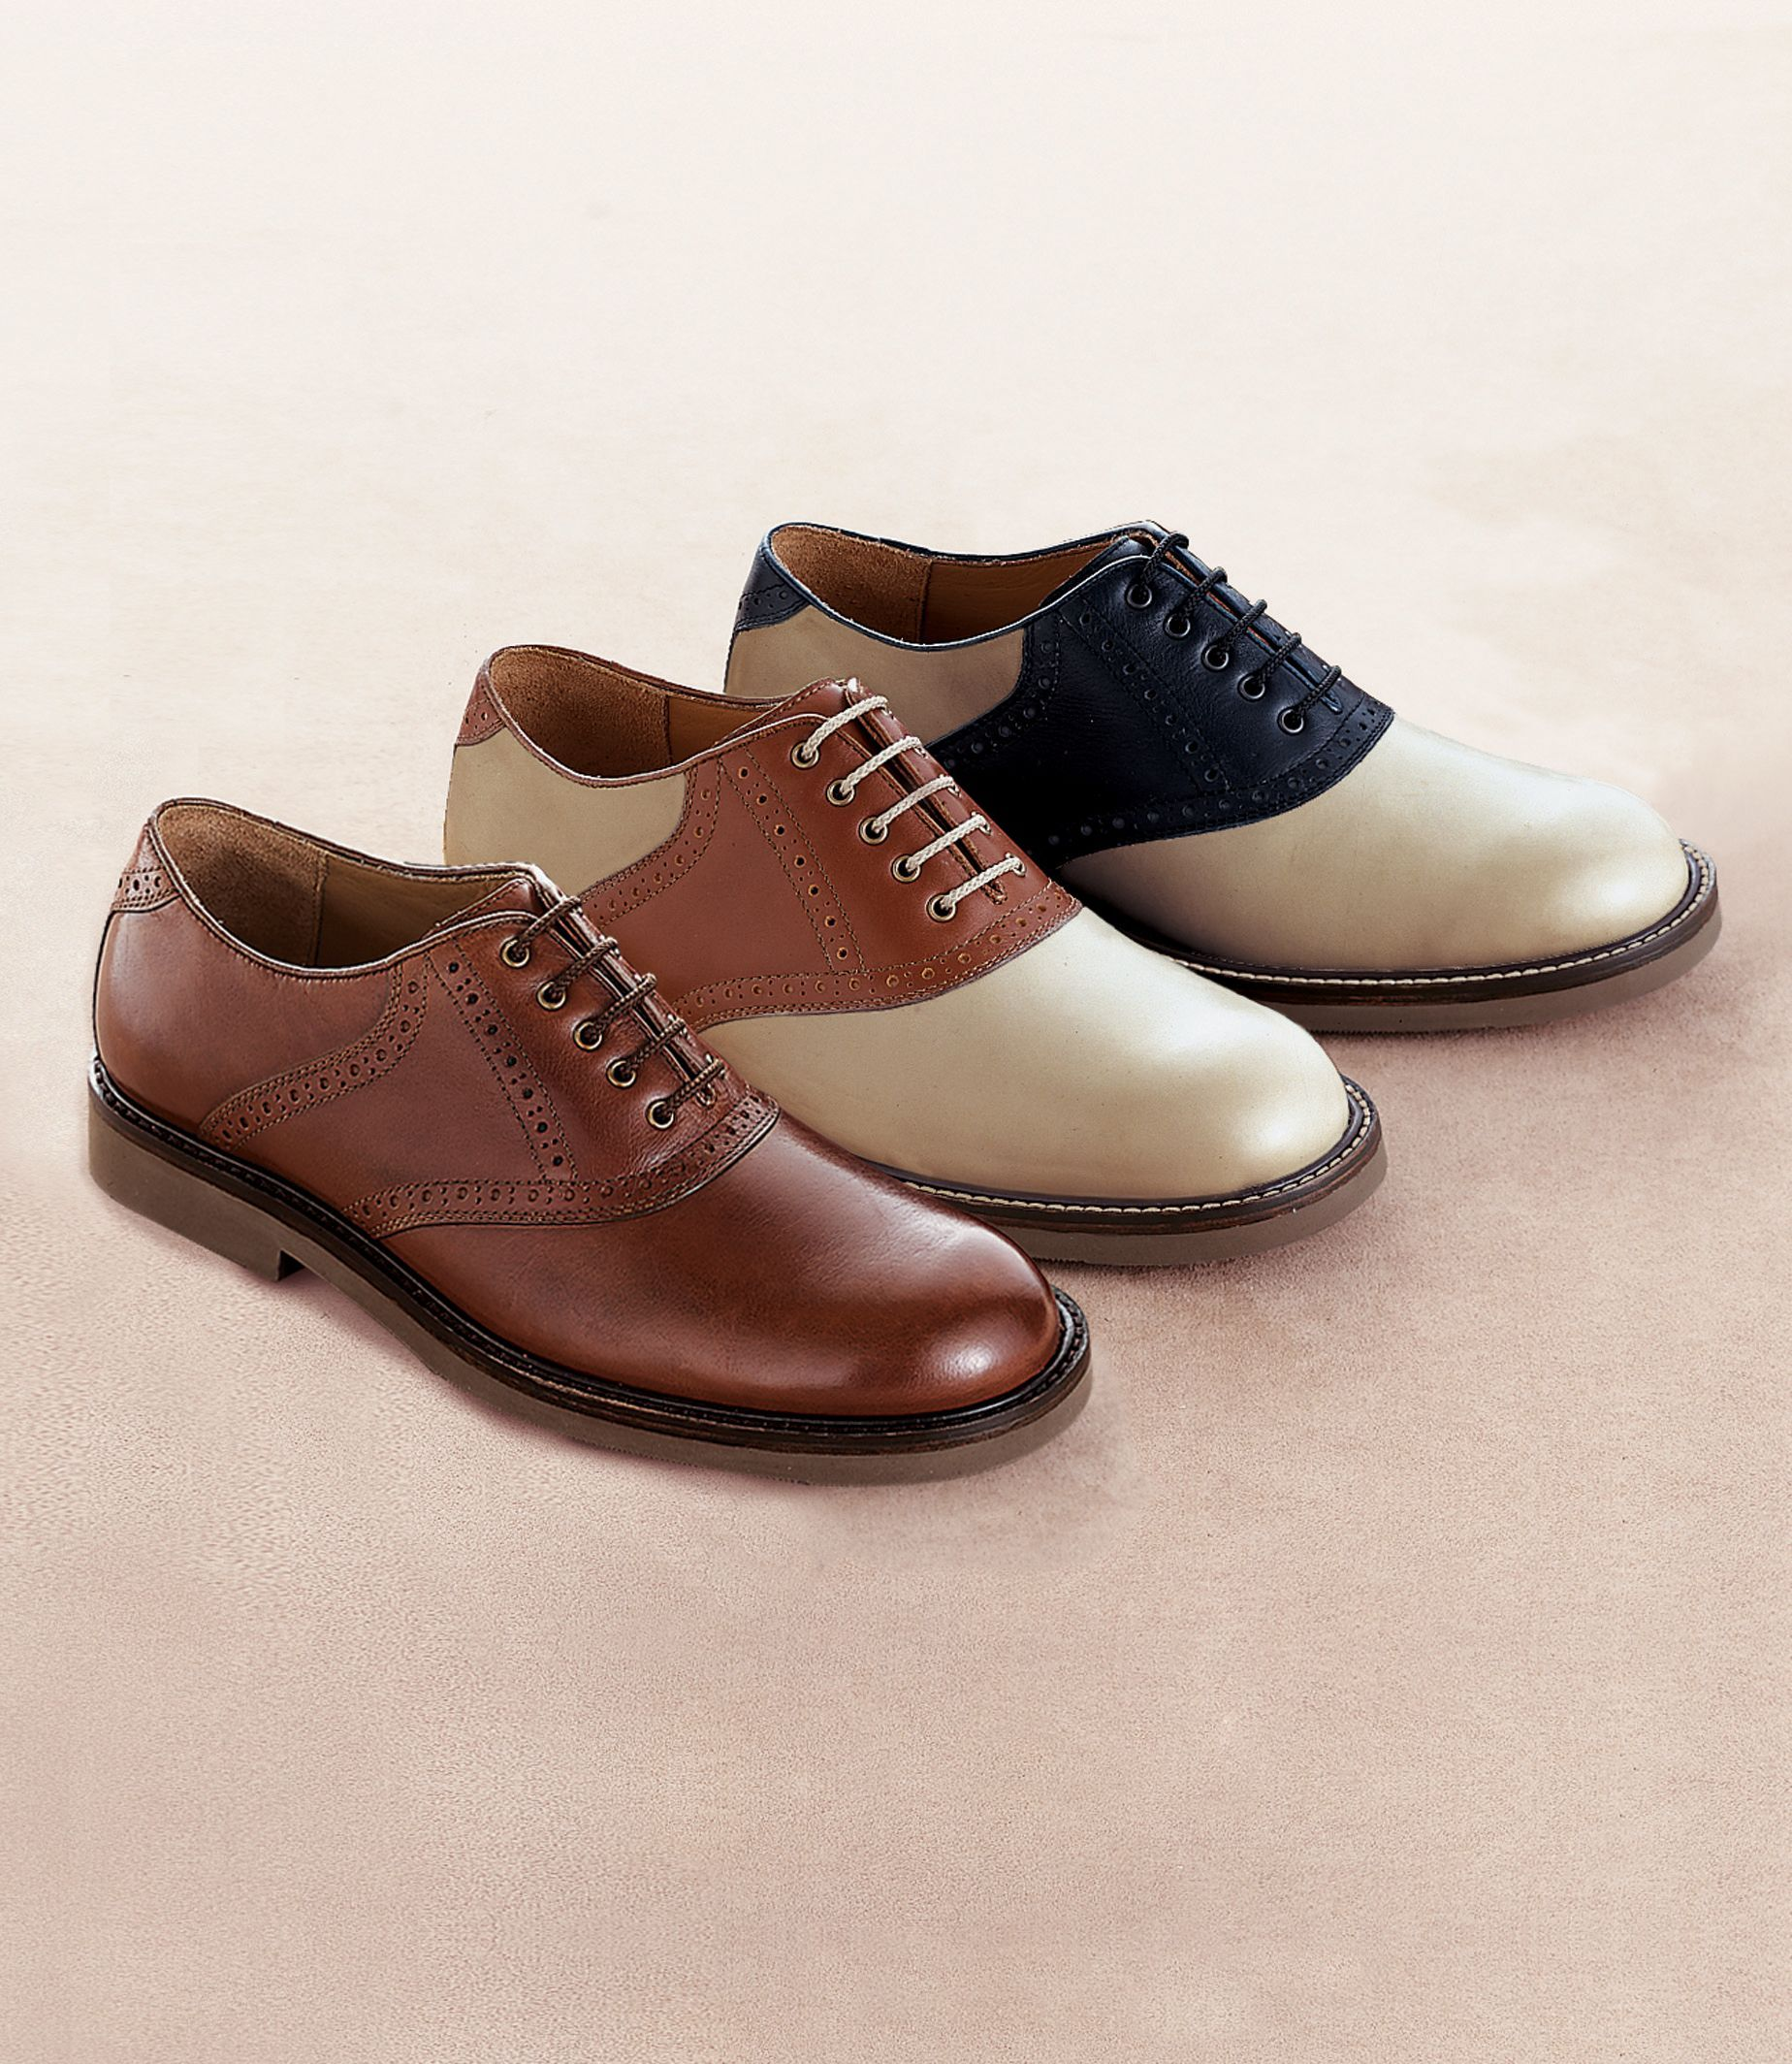 c69759c9 1940's men's fashion | 1940′s Mens Clothing.....great shoes NEVER go out of  style.......dan